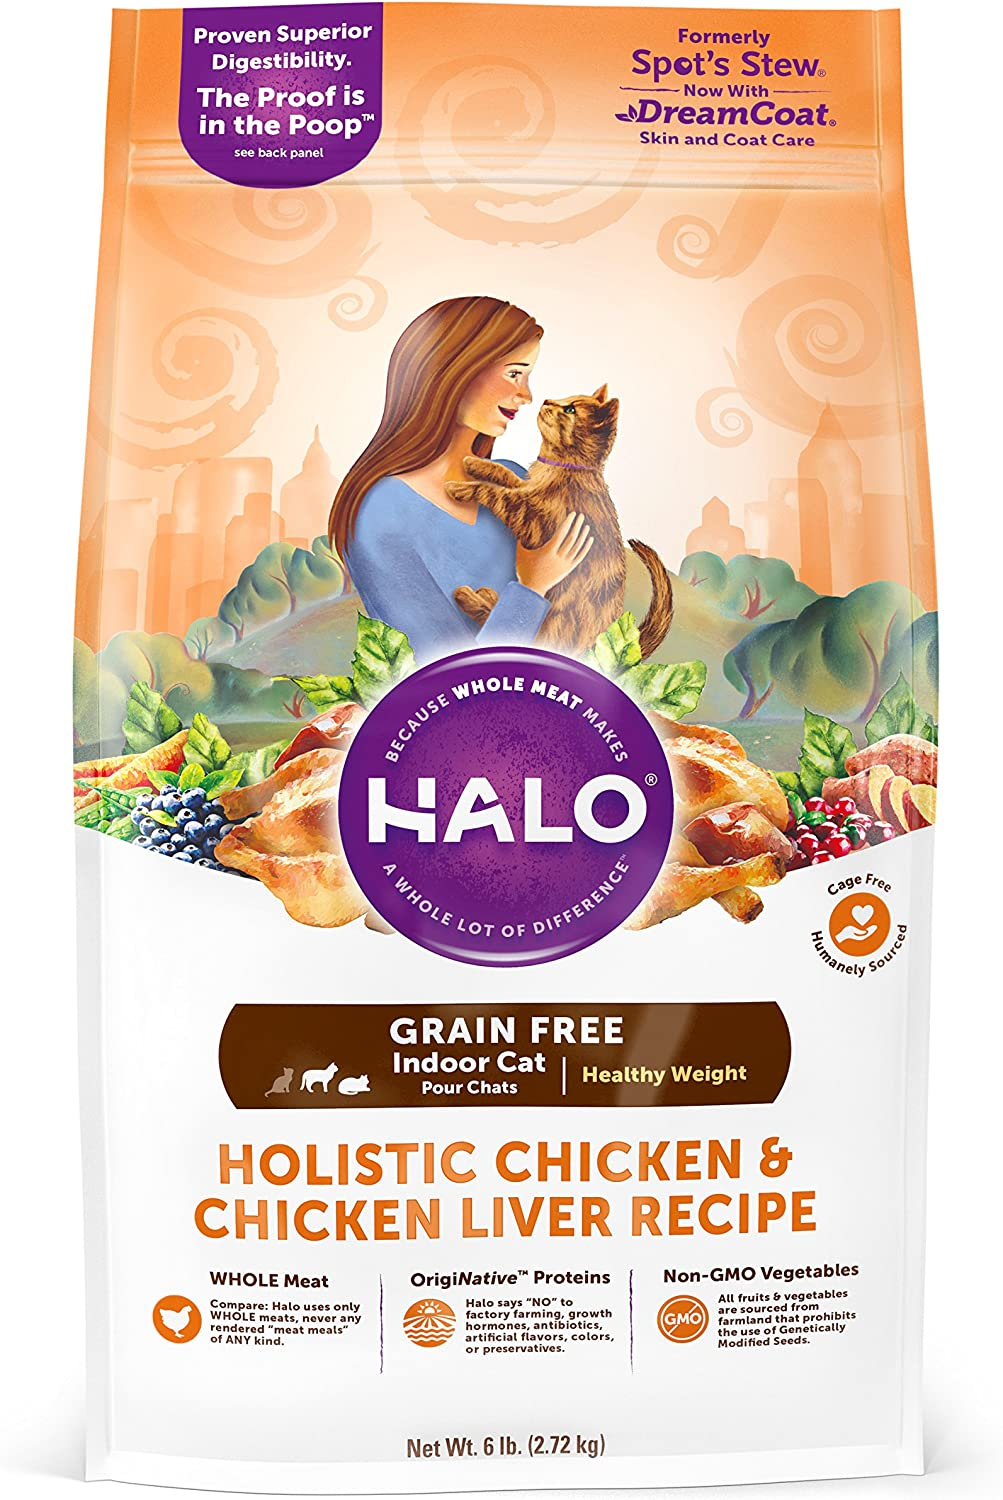 Halo Spot's Stew cat food